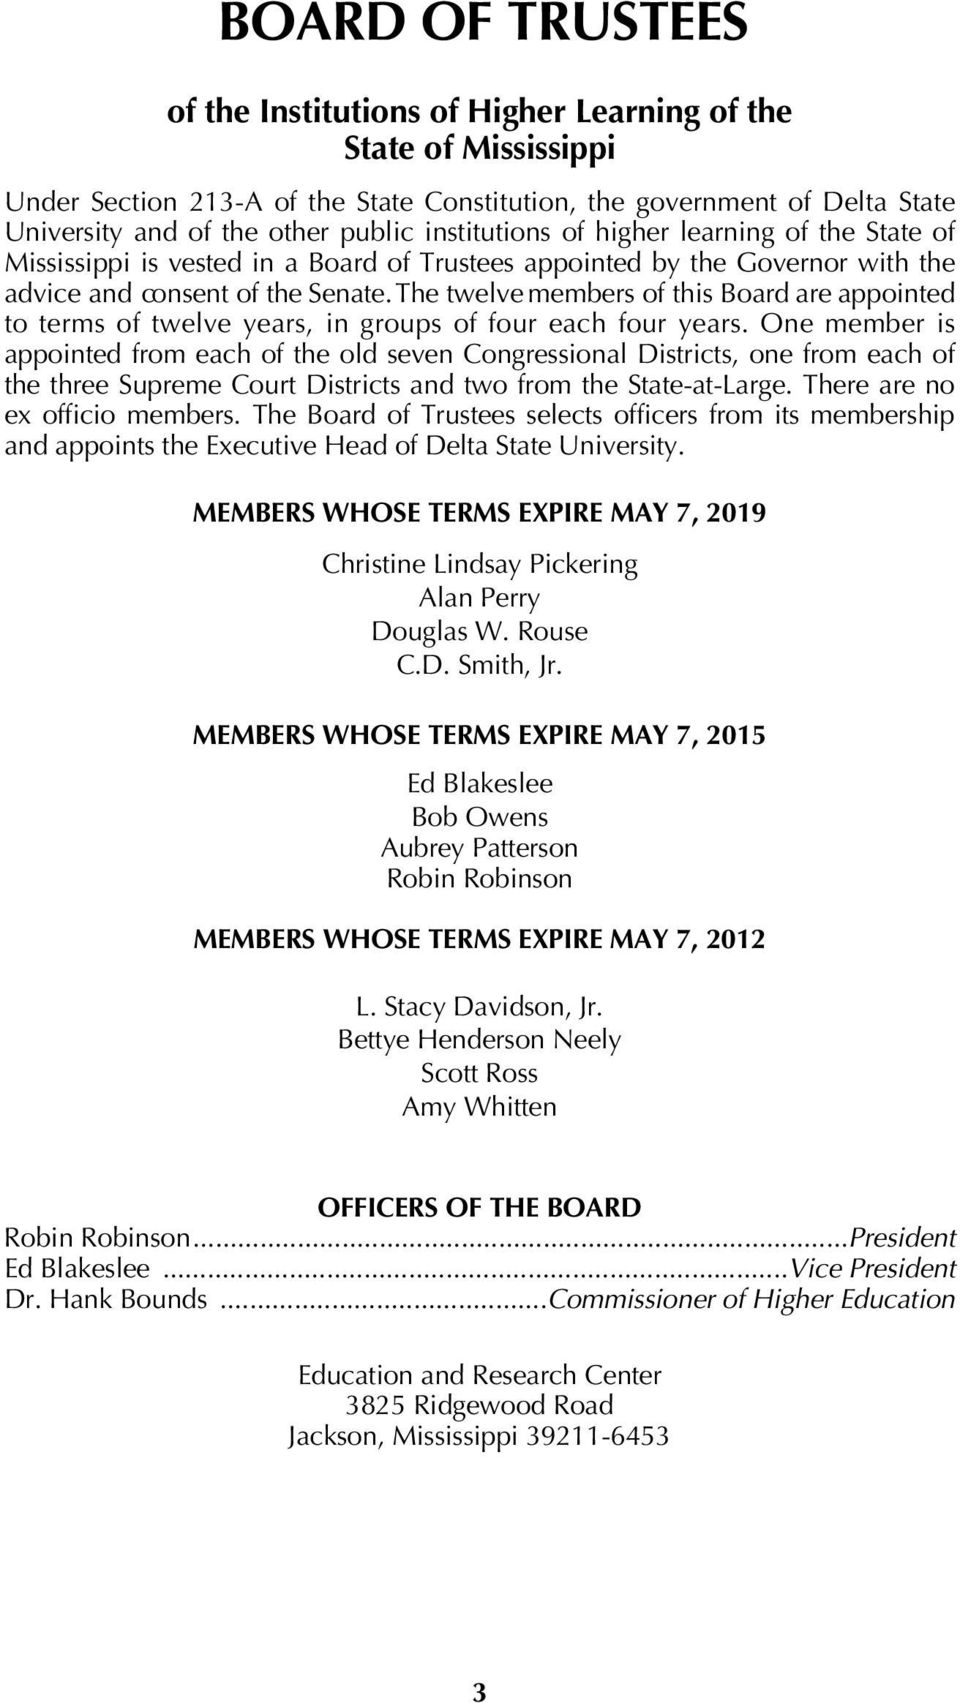 The twelve members of this Board are appointed to terms of twelve years, in groups of four each four years.